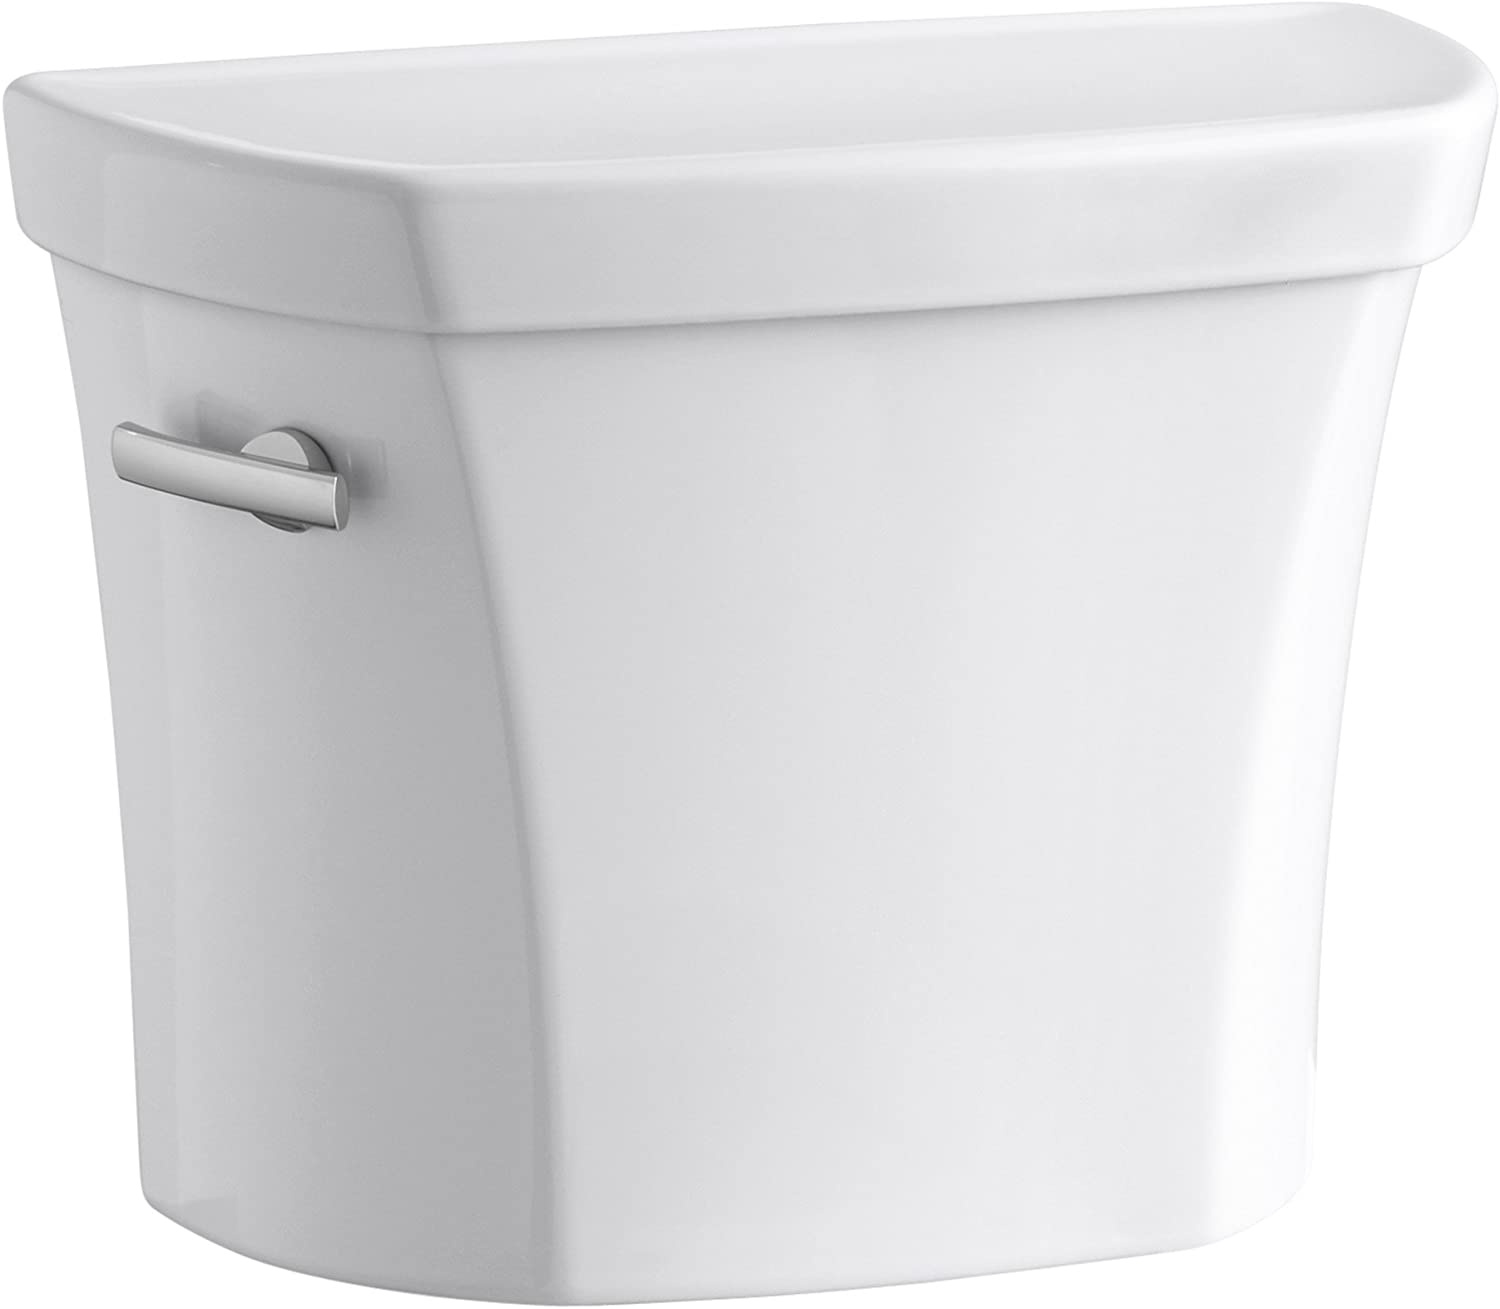 Wellworth 1.0 GPF Max 83% OFF Toilet Tank Trip with sold out White Lever Left-Hand